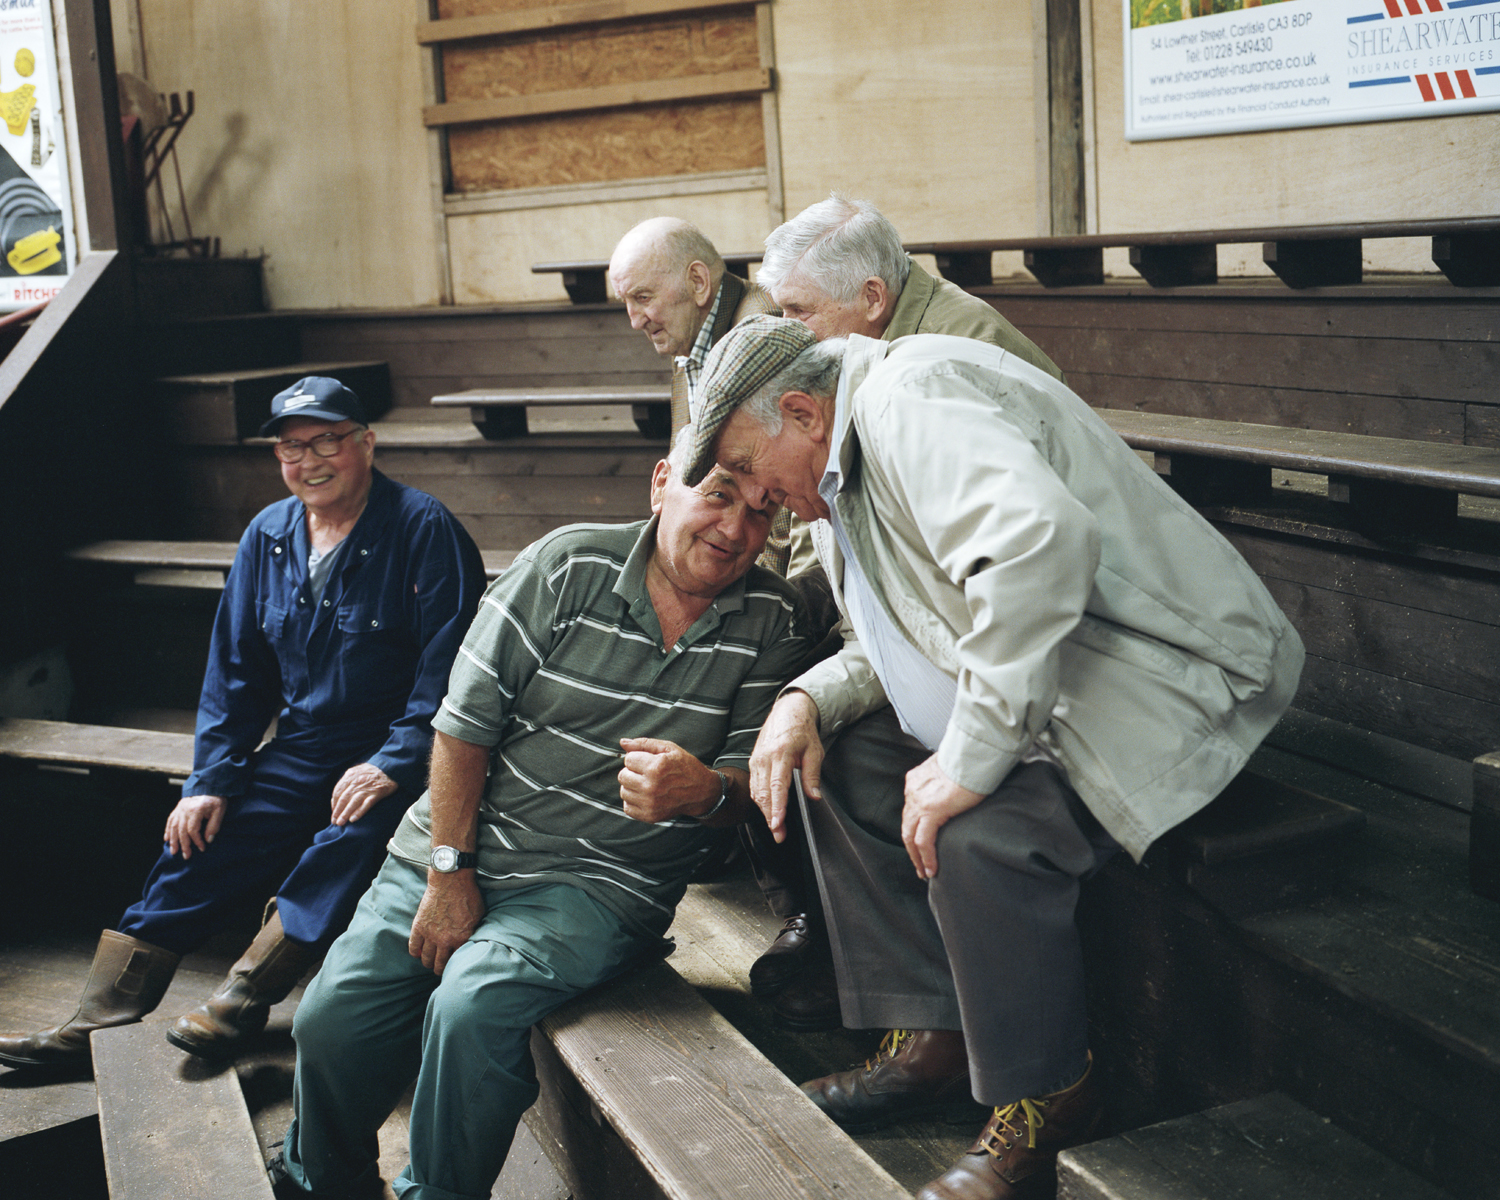 Retired English and Scottish farmers at Cumberland and Dumfriesshire farmers Mart, Longtown, Cumbria.